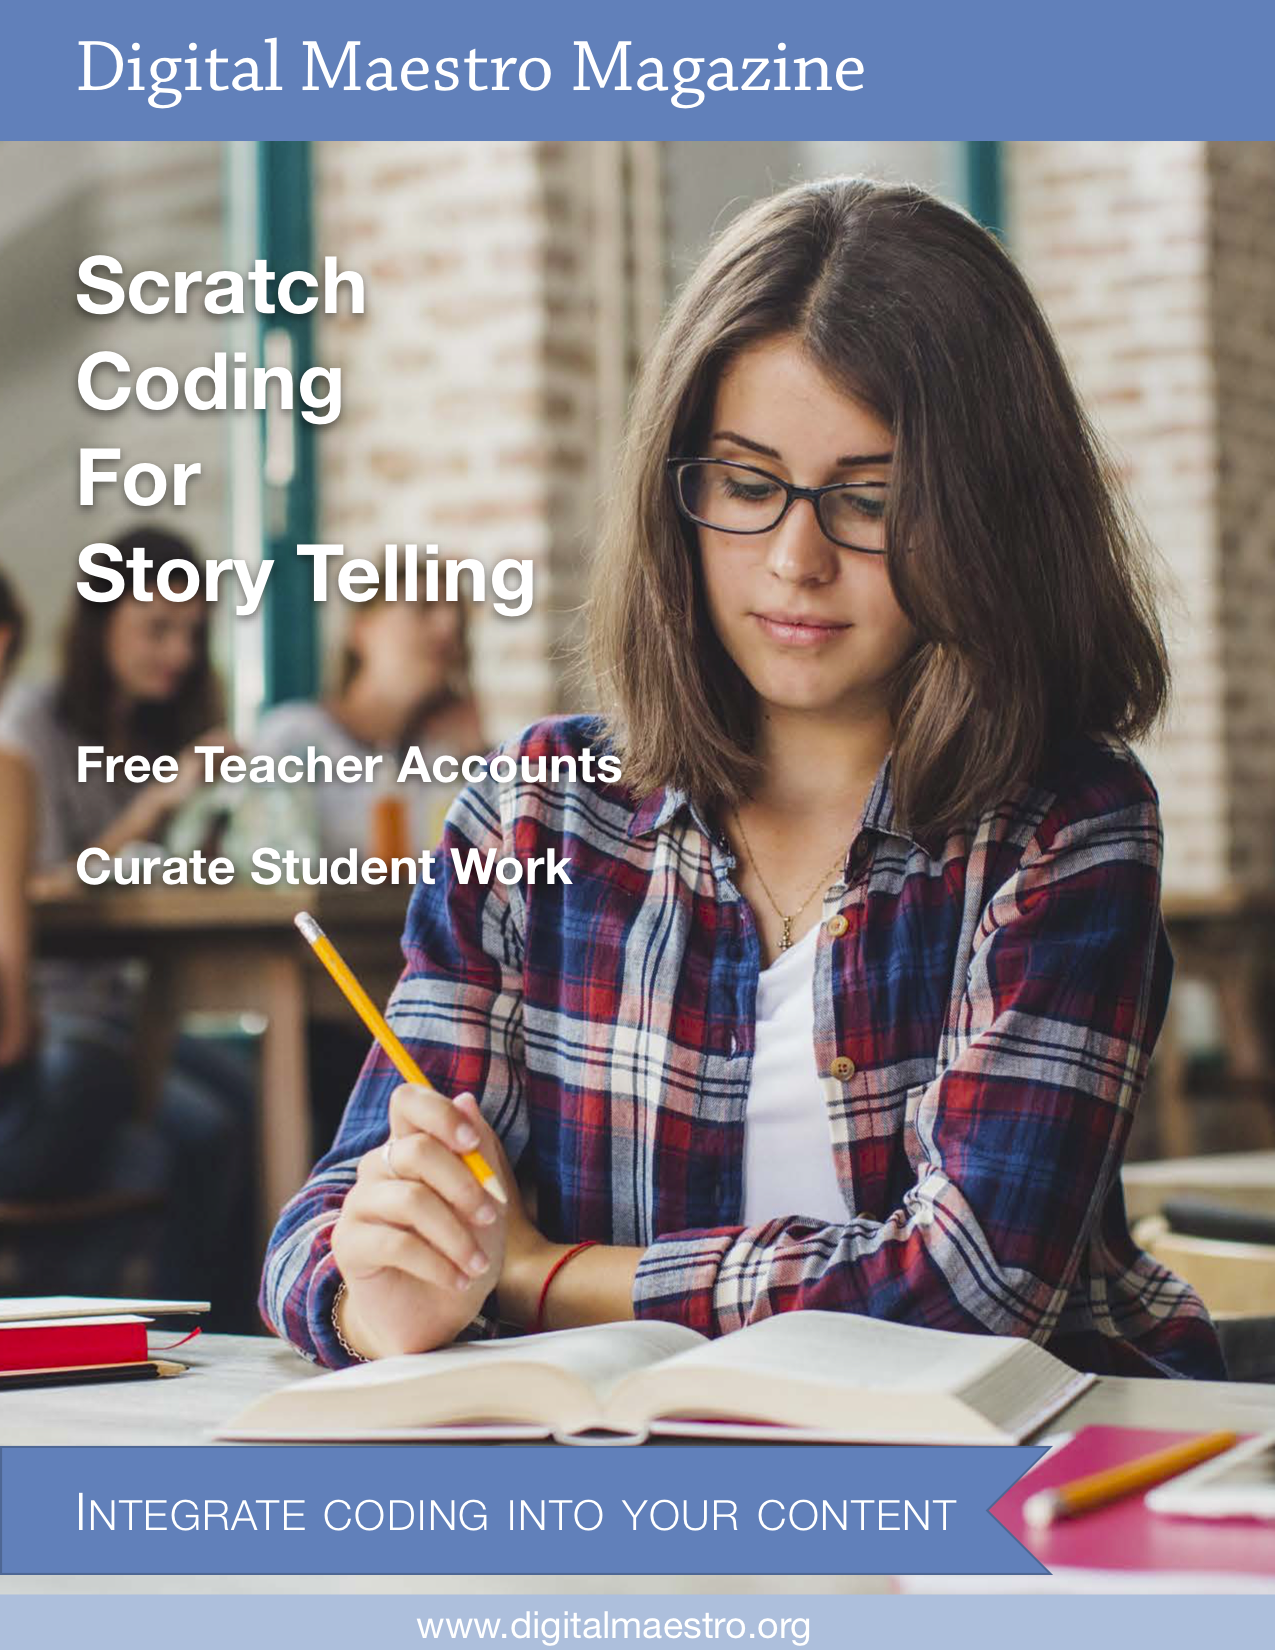 Scratch Coding for Storytelling - Use Scratch to create interactive stories. Create a teacher account and curate student work.